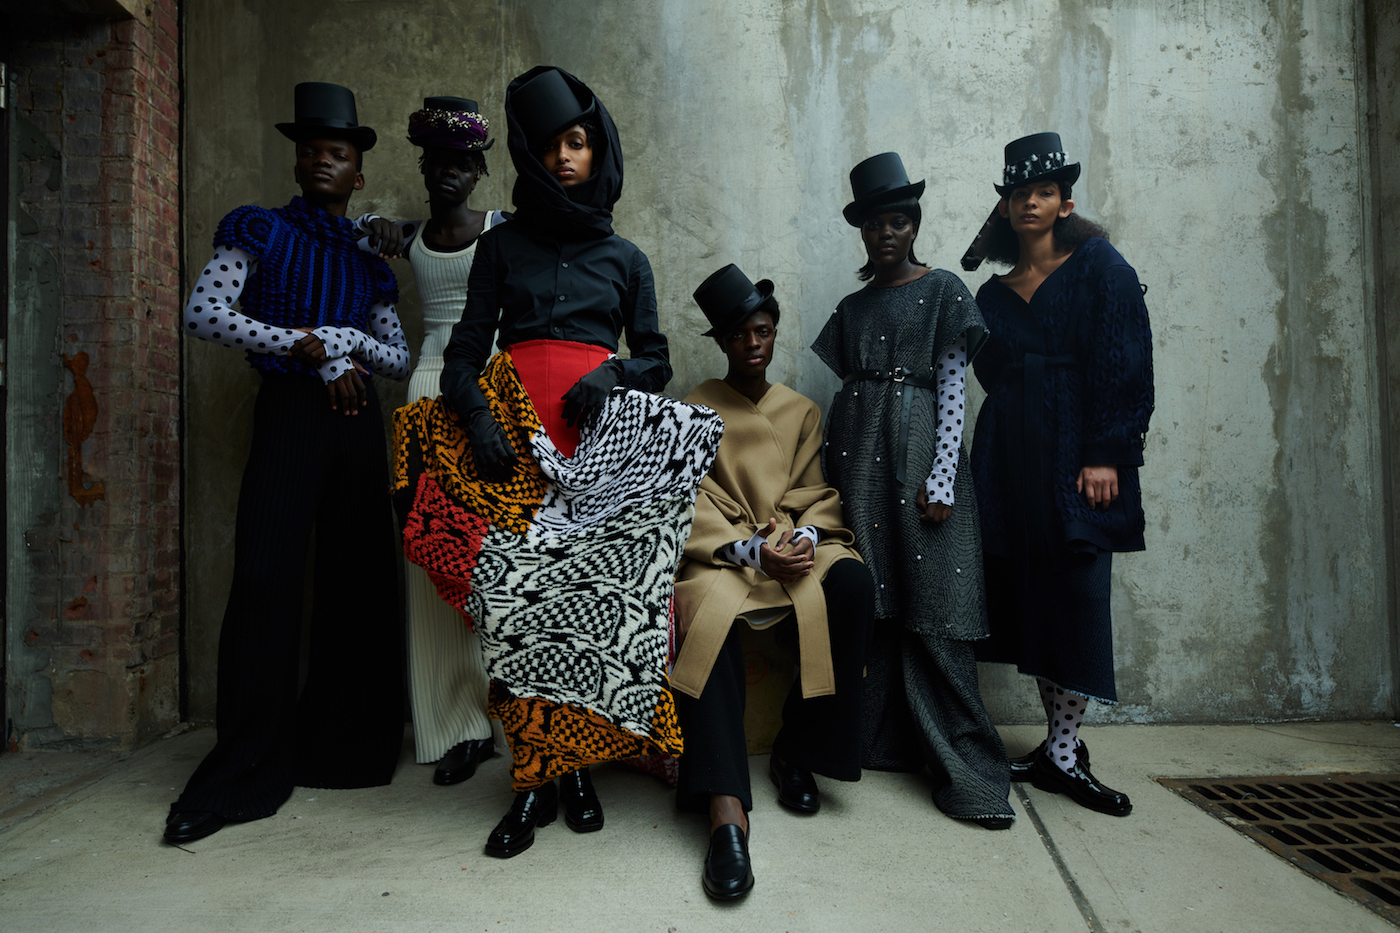 Featuring looks by LECAVALIER and Matty Bovan. Photo by Ibrahem Hasan.